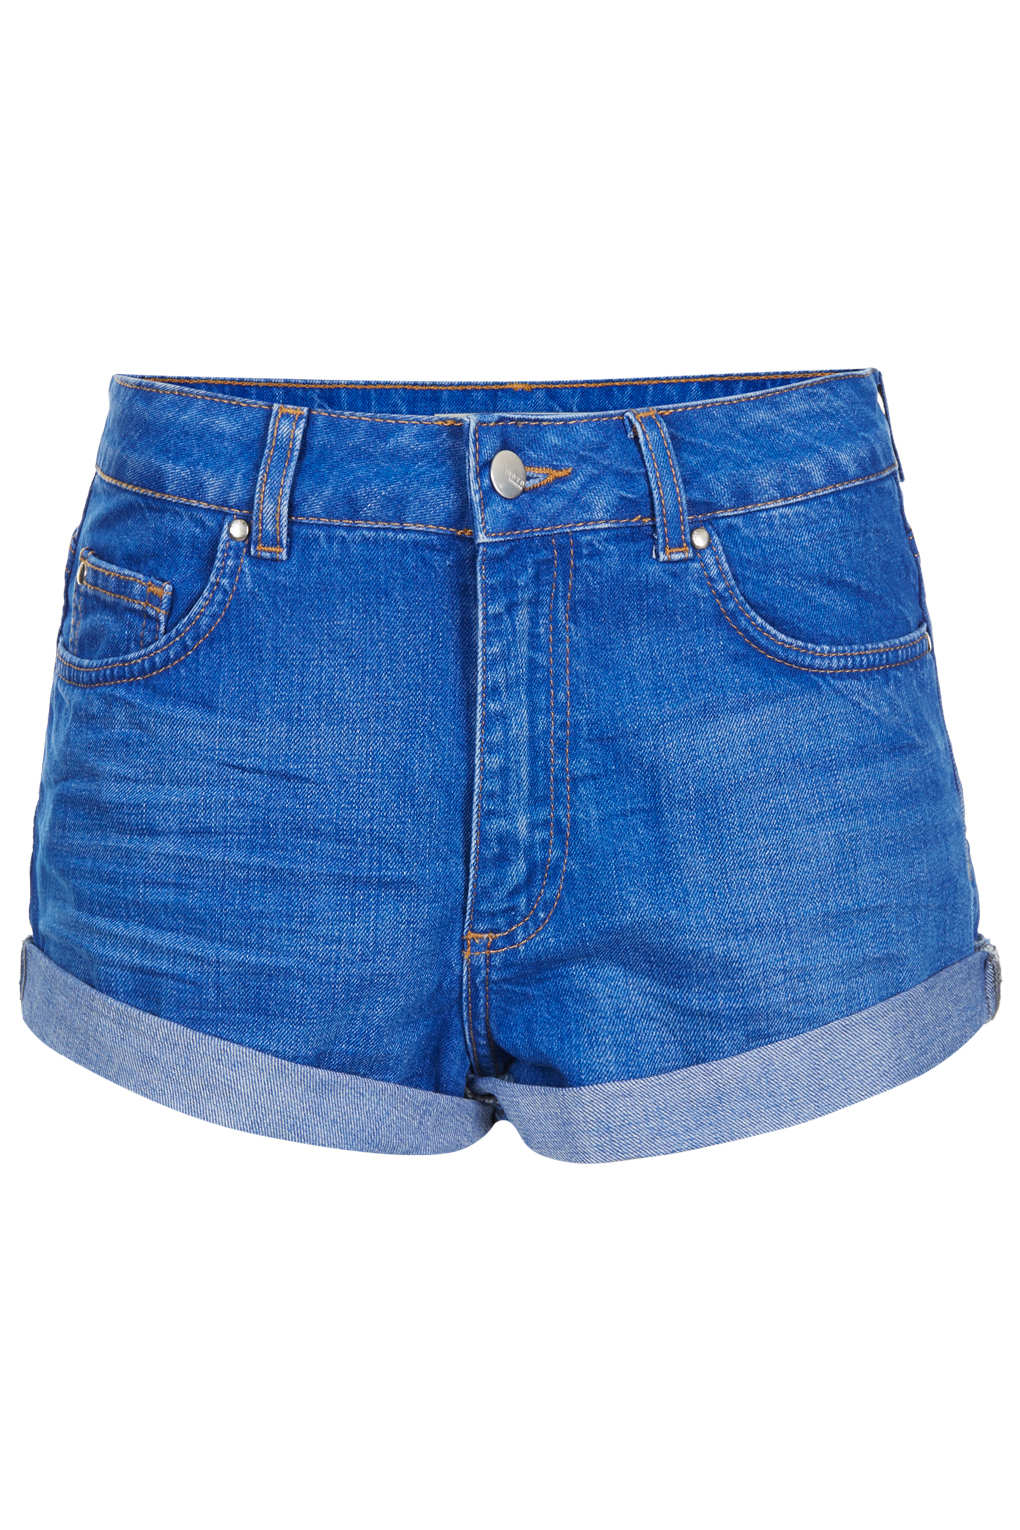 Lyst topshop moto high waisted denim shorts in blue for Womens denim shirts topshop